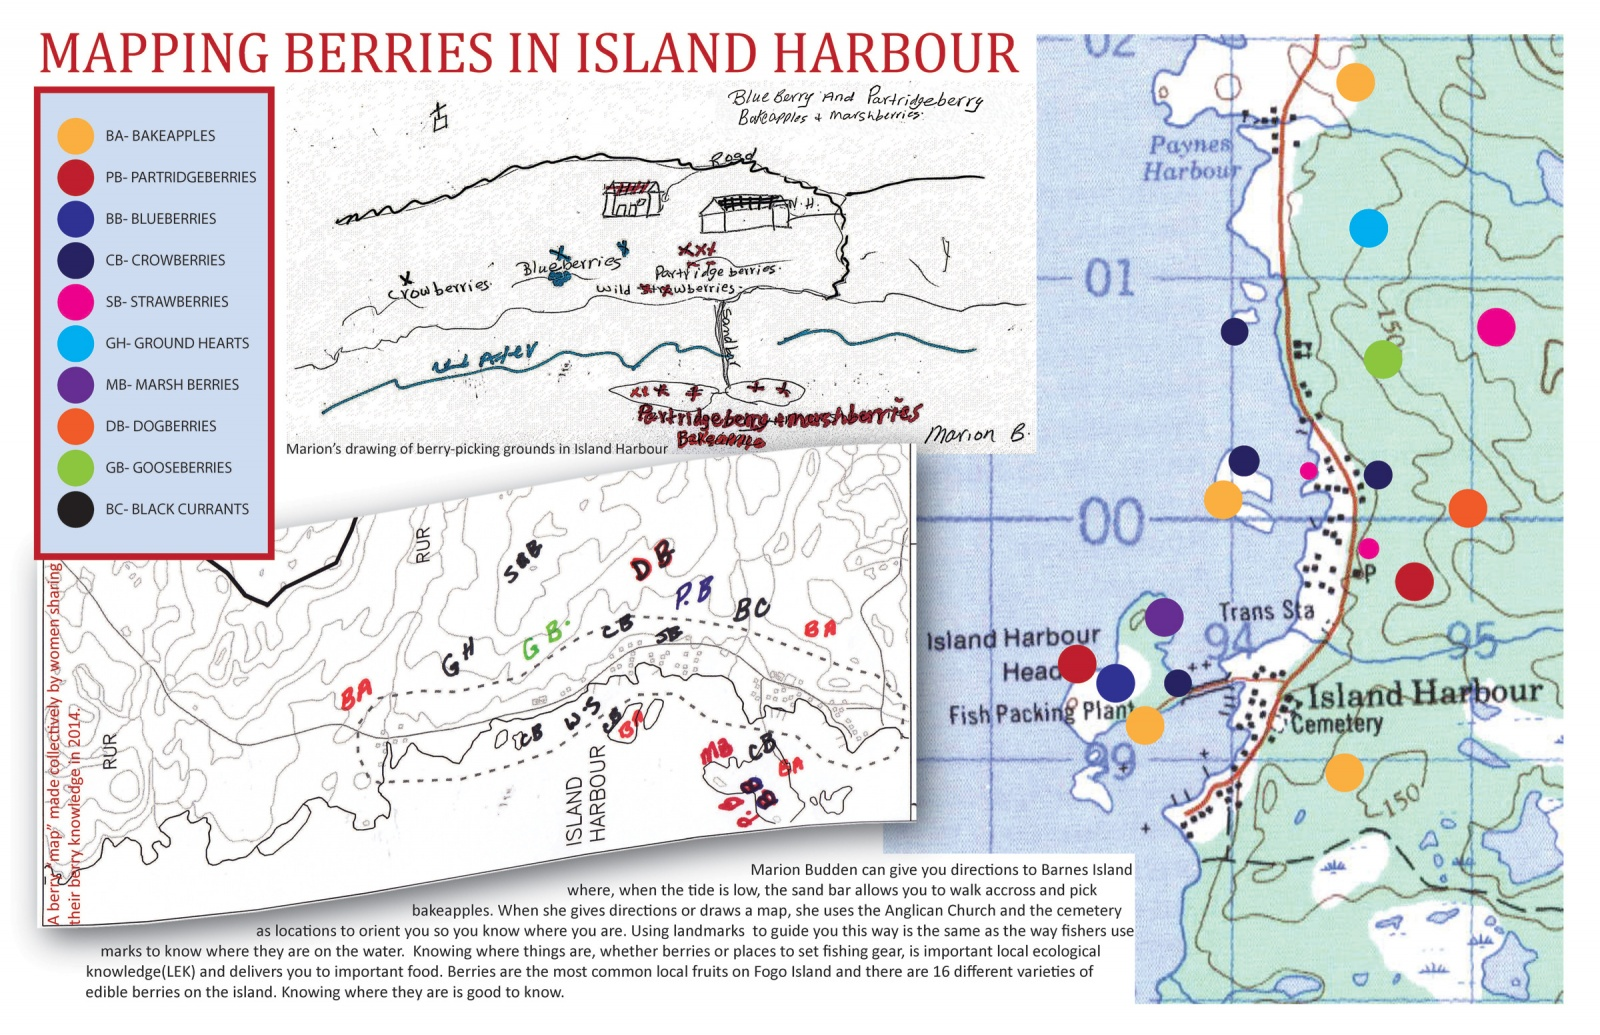 Mapping Berries in Island Harbour